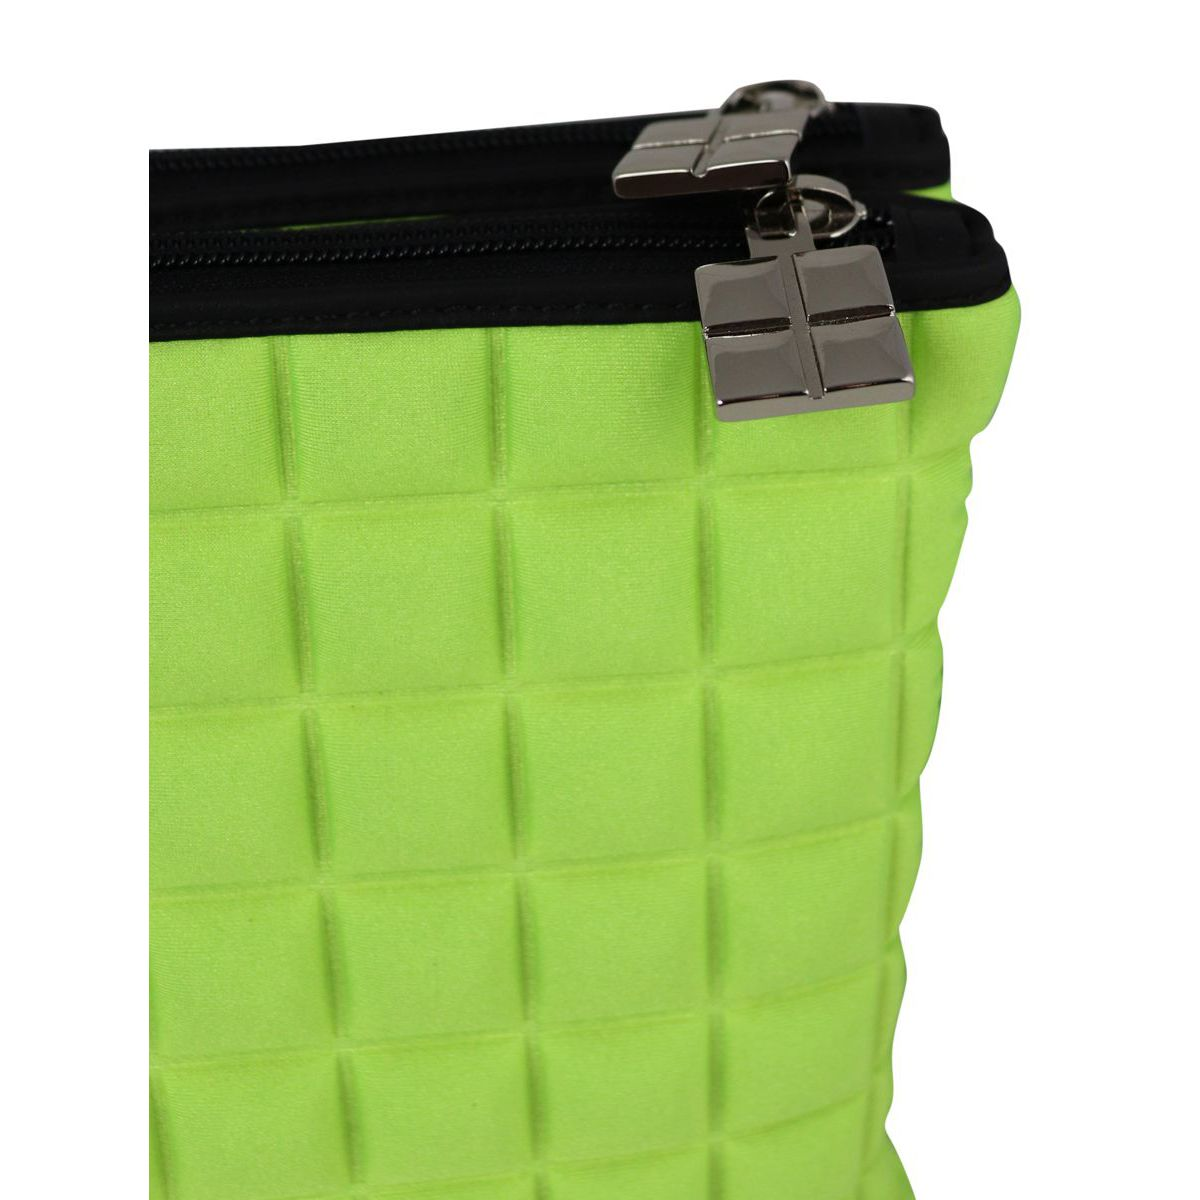 Double maxi bag in cube fabric Fluo yellow BPRIME